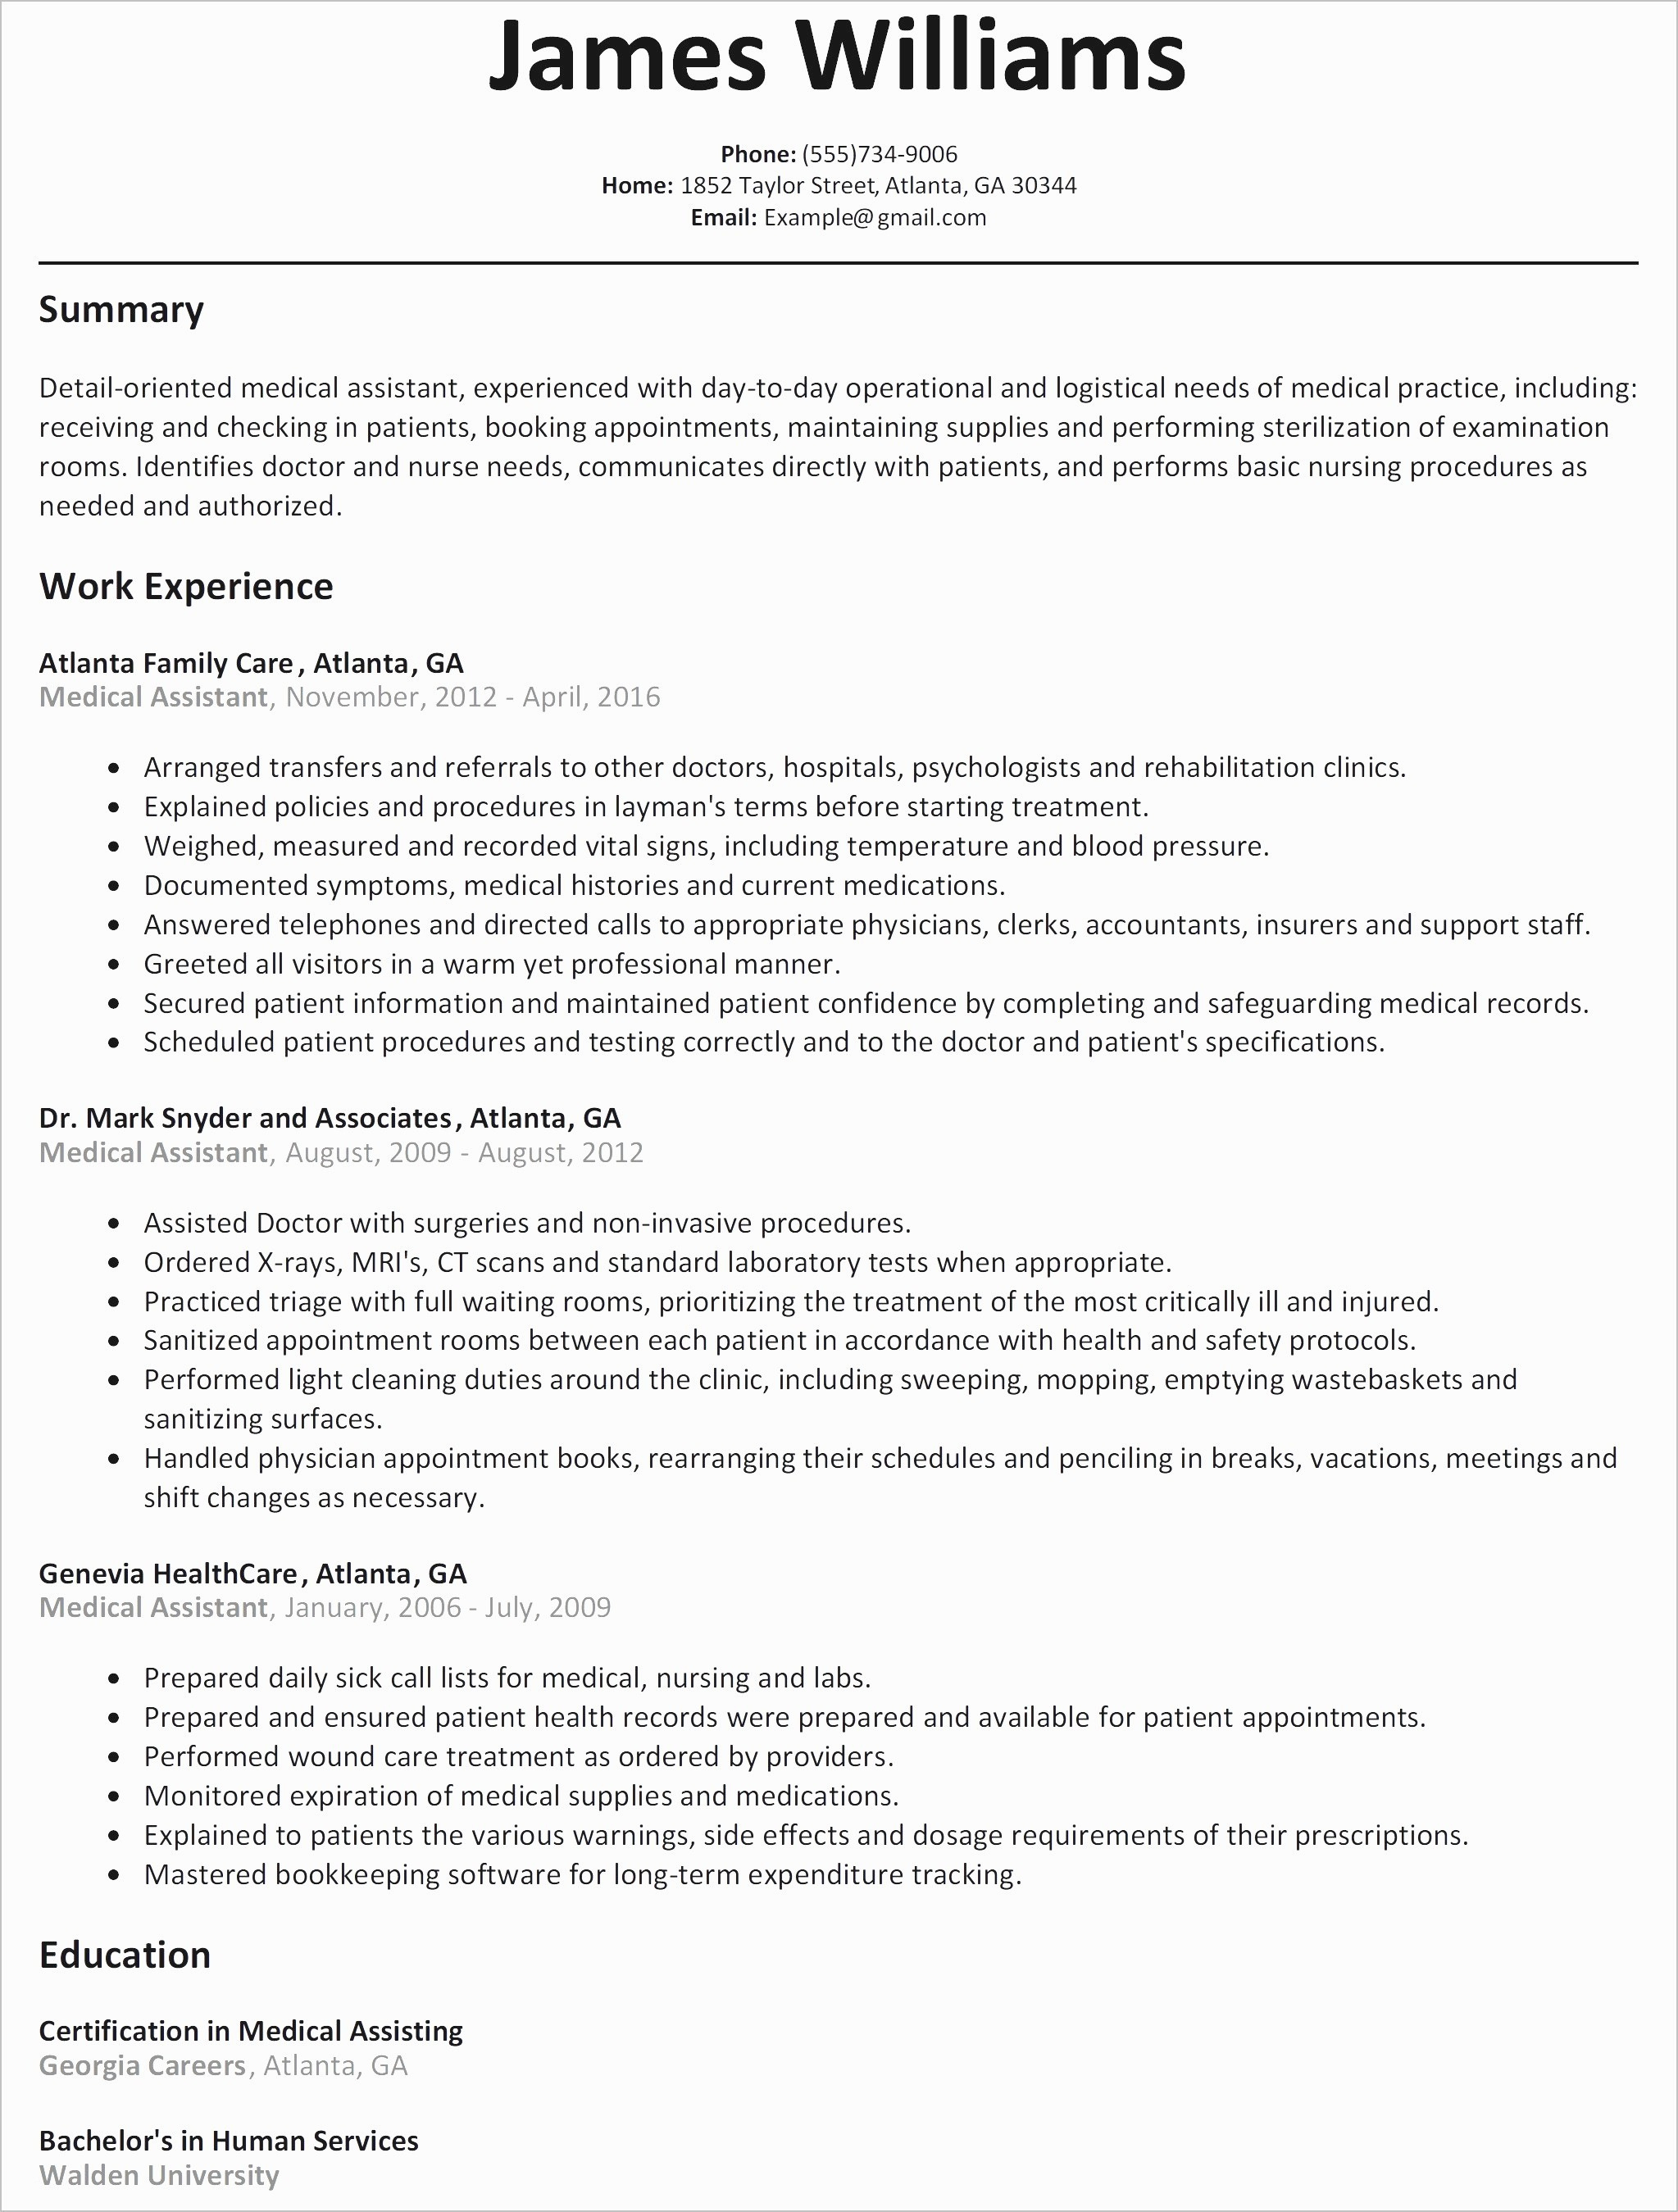 Skills Summary for Resume Examples - Resume Summary for Customer Service Awesome Resume Summary for